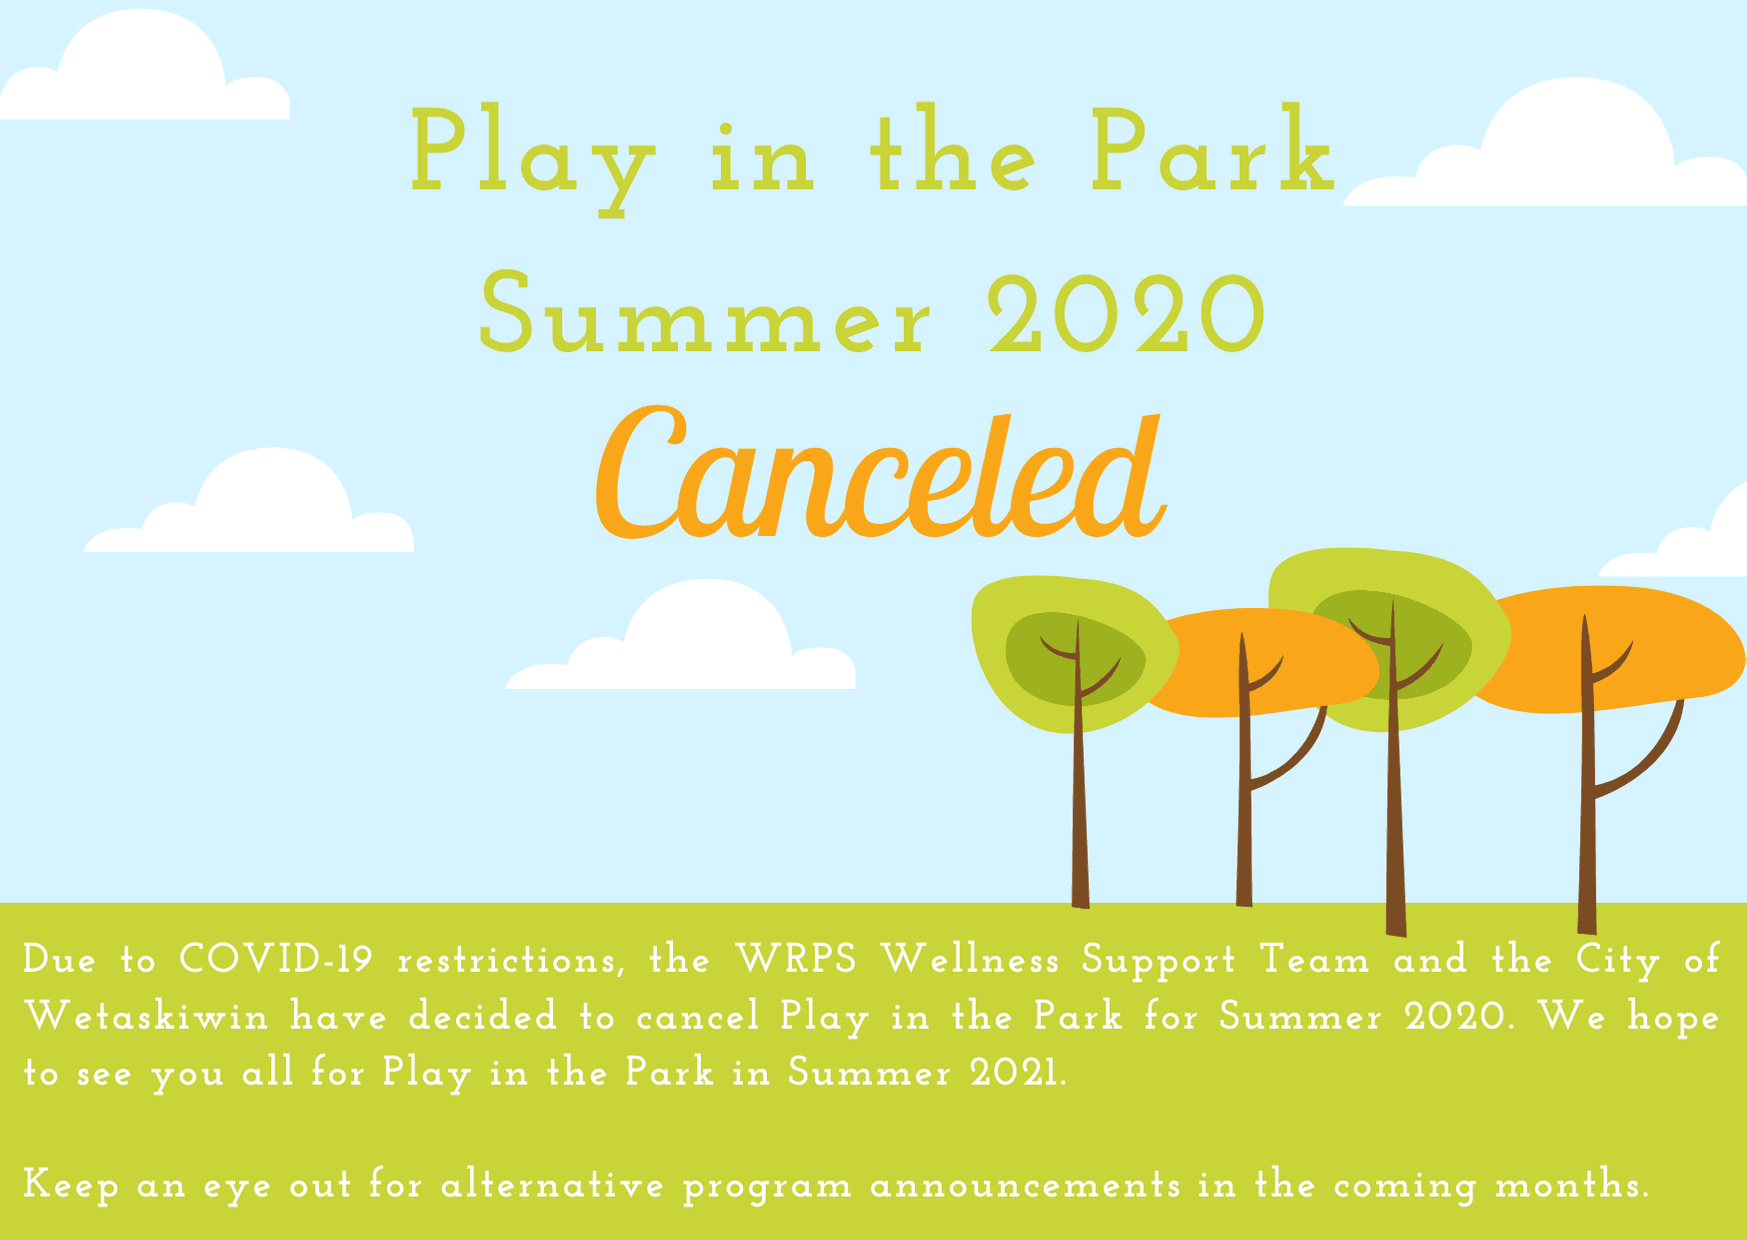 PiP Announcement - Cancelled Summer 2020